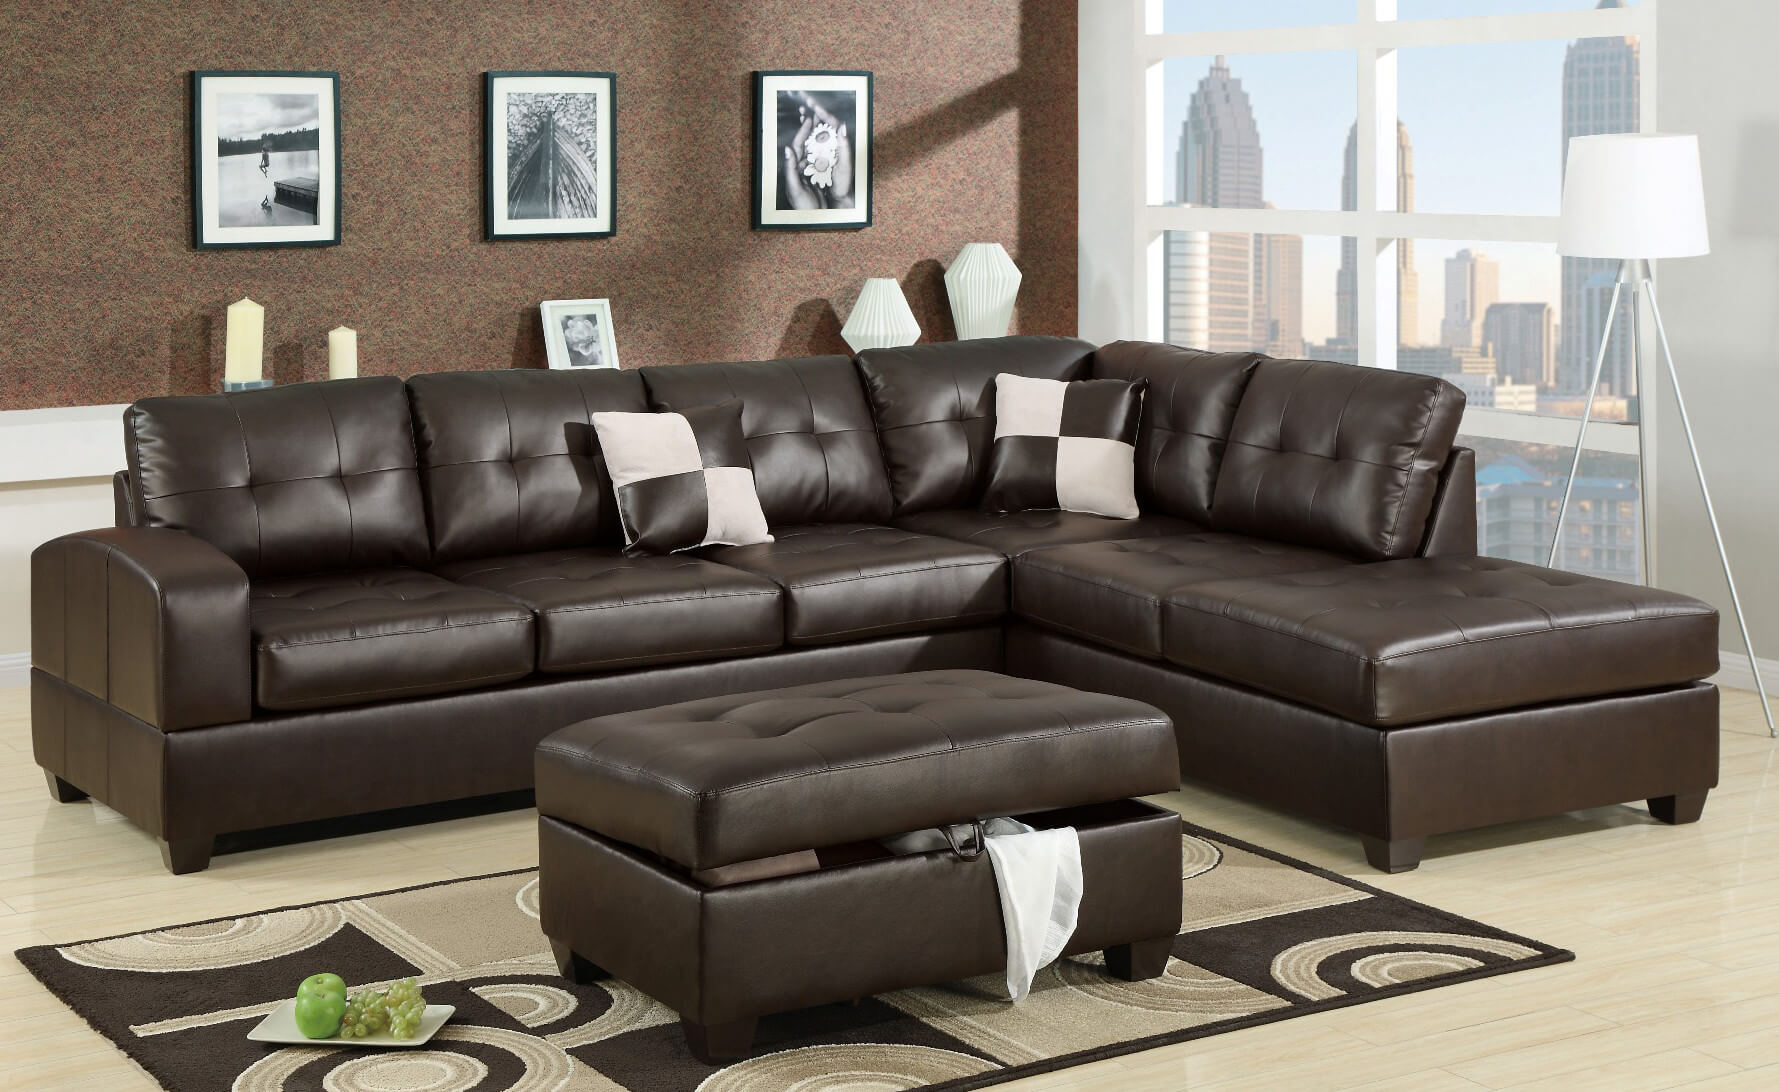 Cheap Sectional Couches | Leather Sectional Sofa | Bobs Furniture Living Room Sets : leather sectional discount - Sectionals, Sofas & Couches